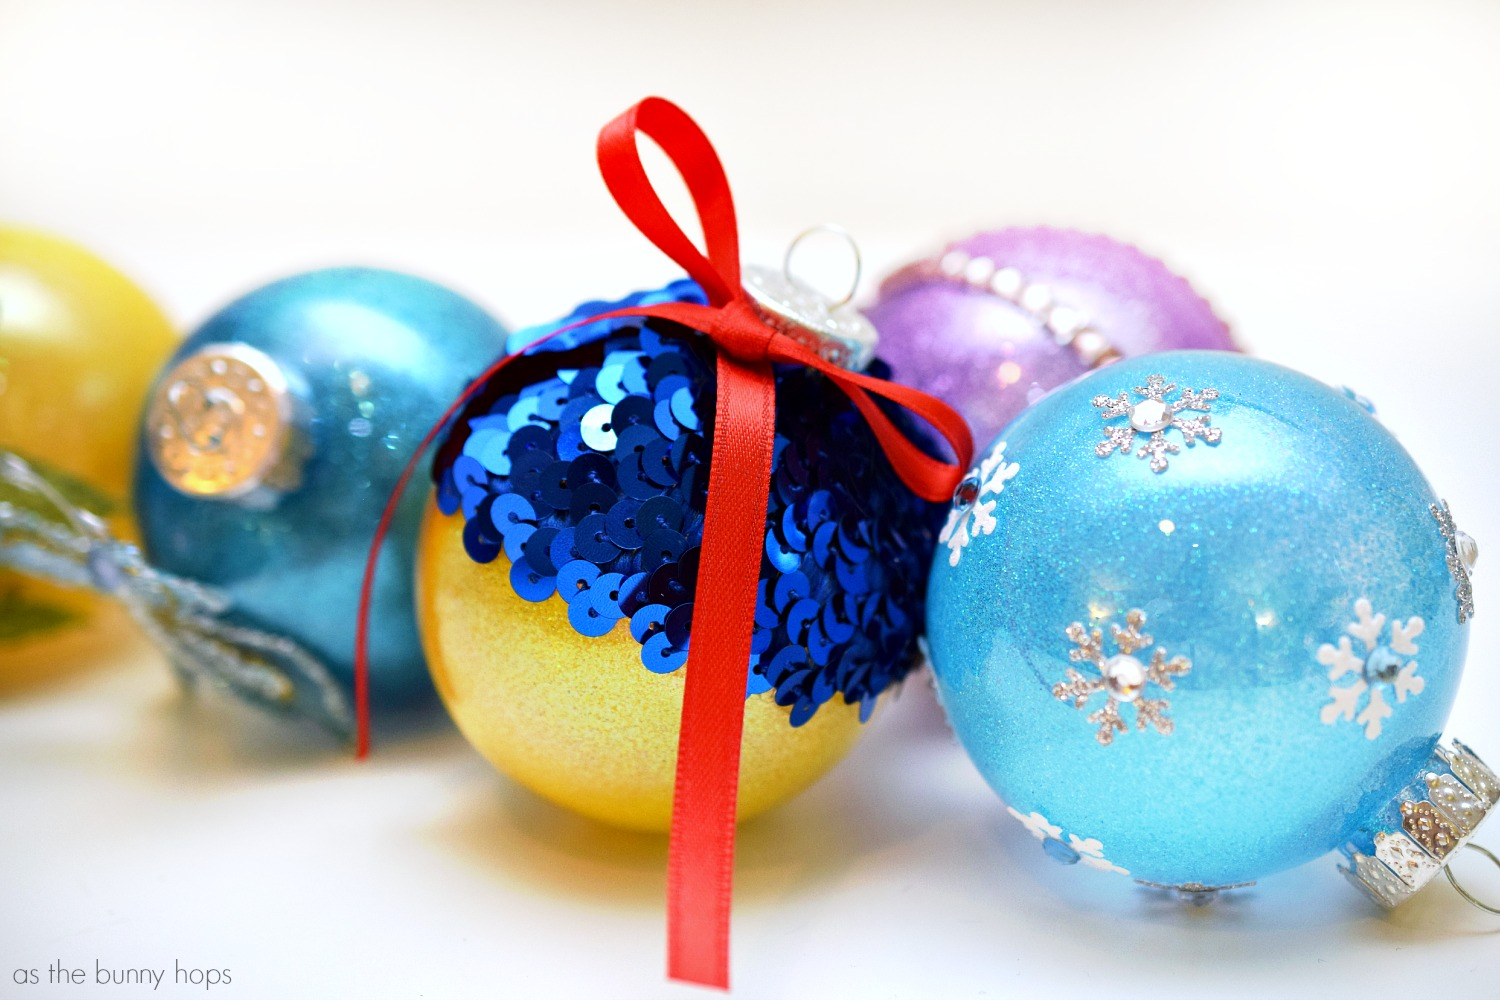 Disney Princess-Inspired Christmas Ornaments from As The Bunny Hops